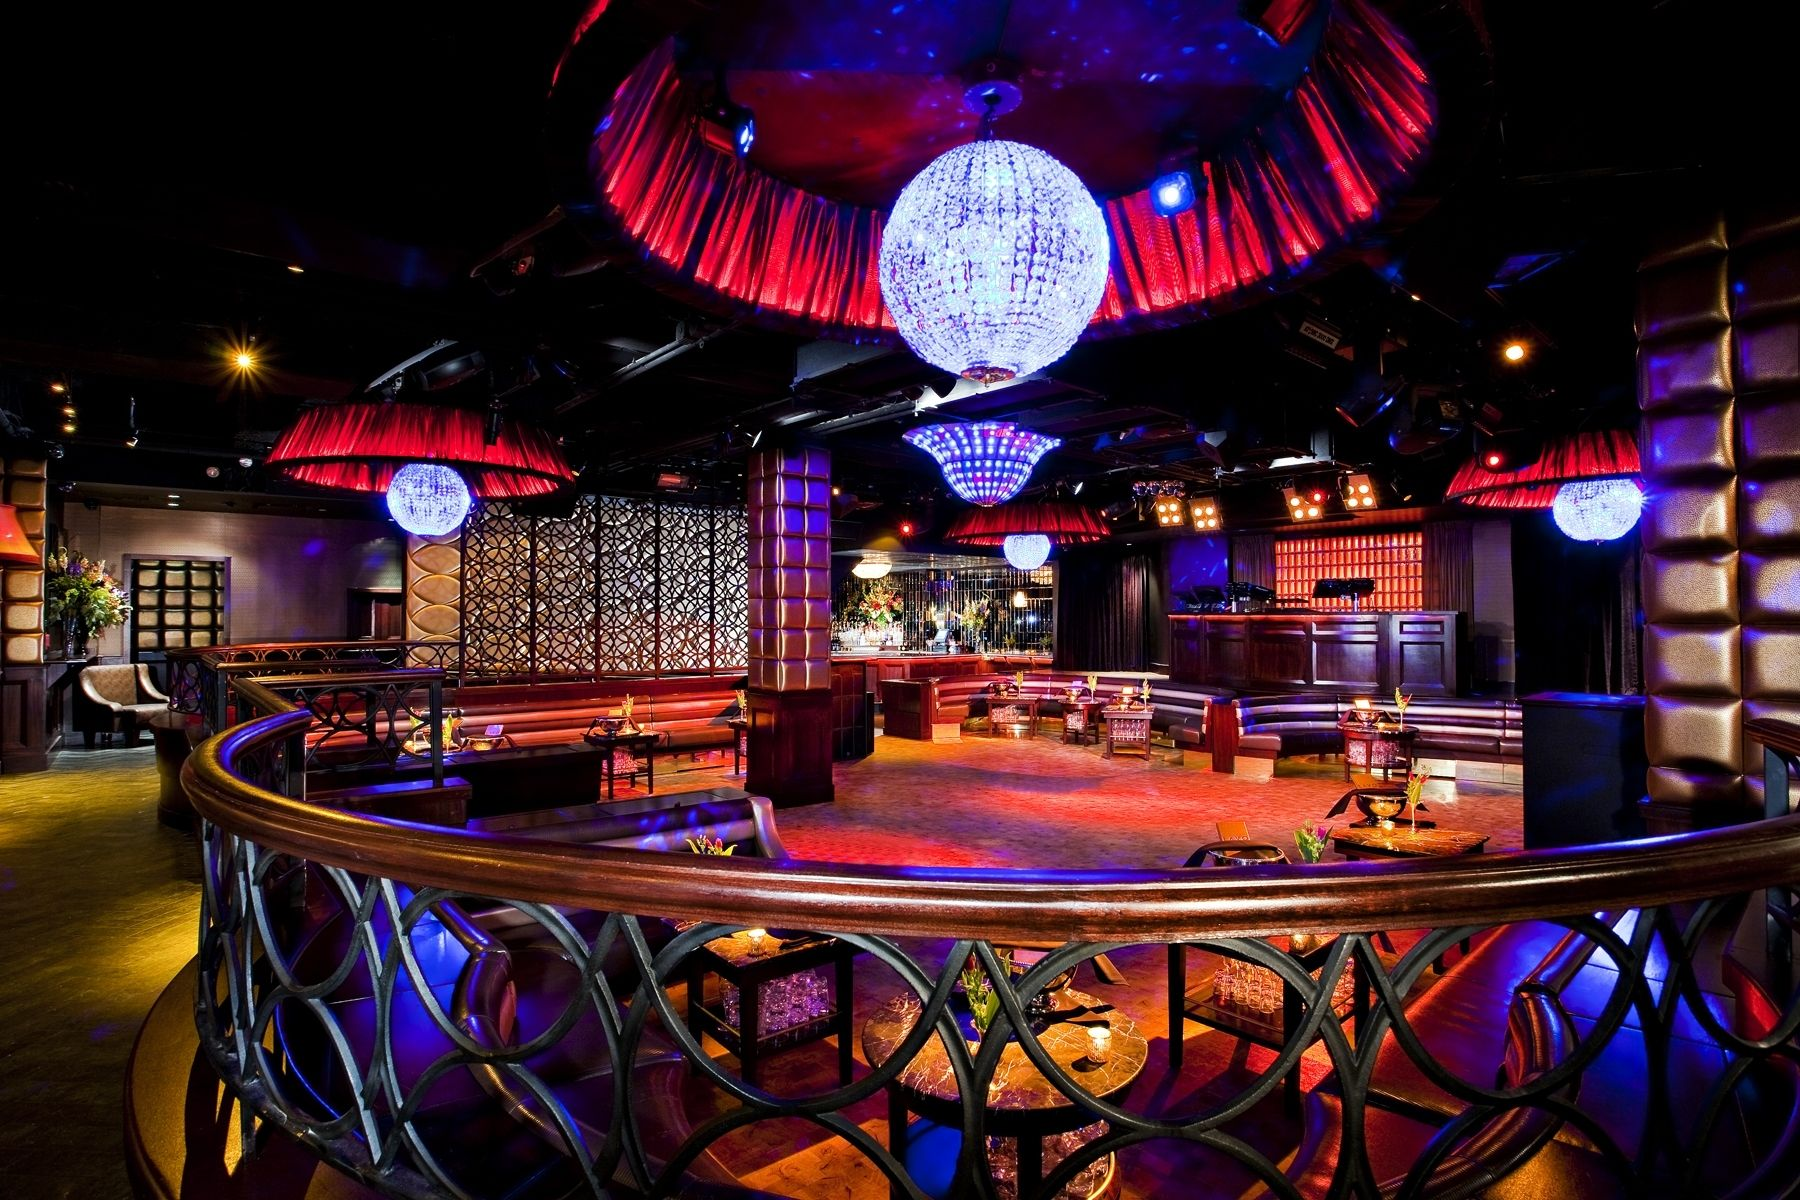 Lavo 39 E 58th St Nr Madison Ave The 6 000 Square Foot Venue Sits Regally On E 58th Between Madison And Night Club Las Vegas Night Clubs Night Life